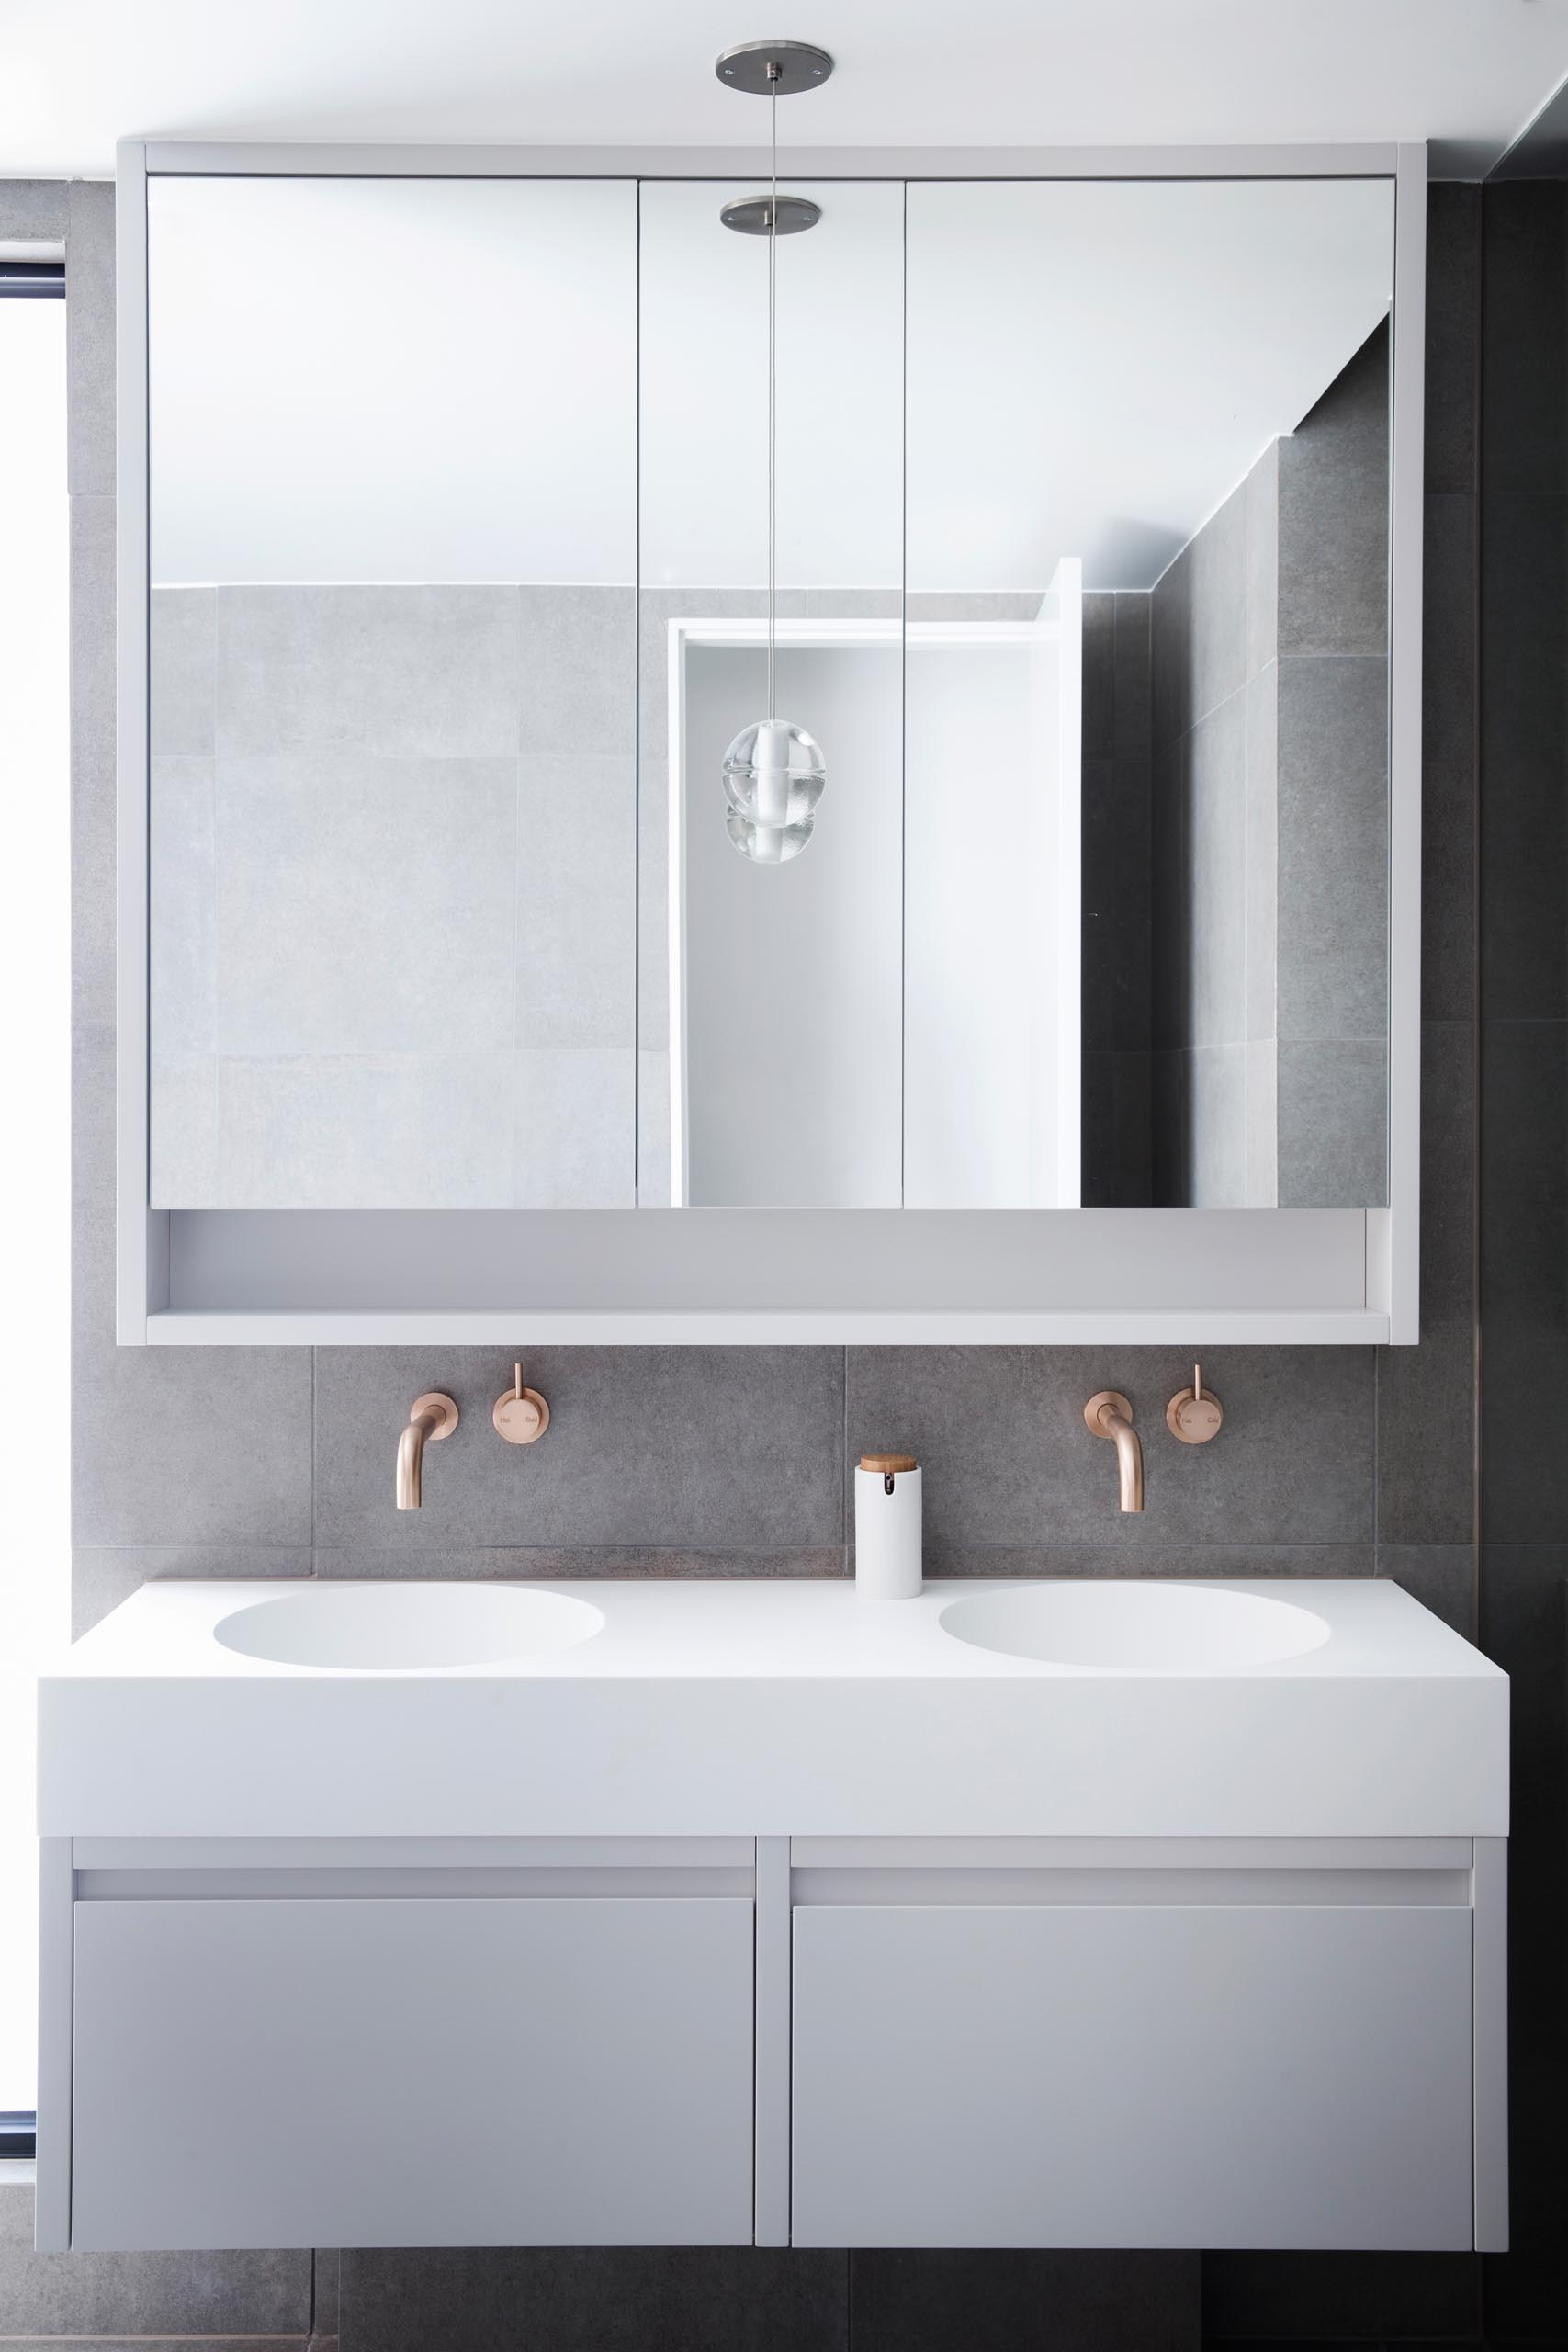 A modern bathroom with a large mirror, brushed rose gold hardware, a countertop with dual built-in sinks, and minimalist cabinetry.